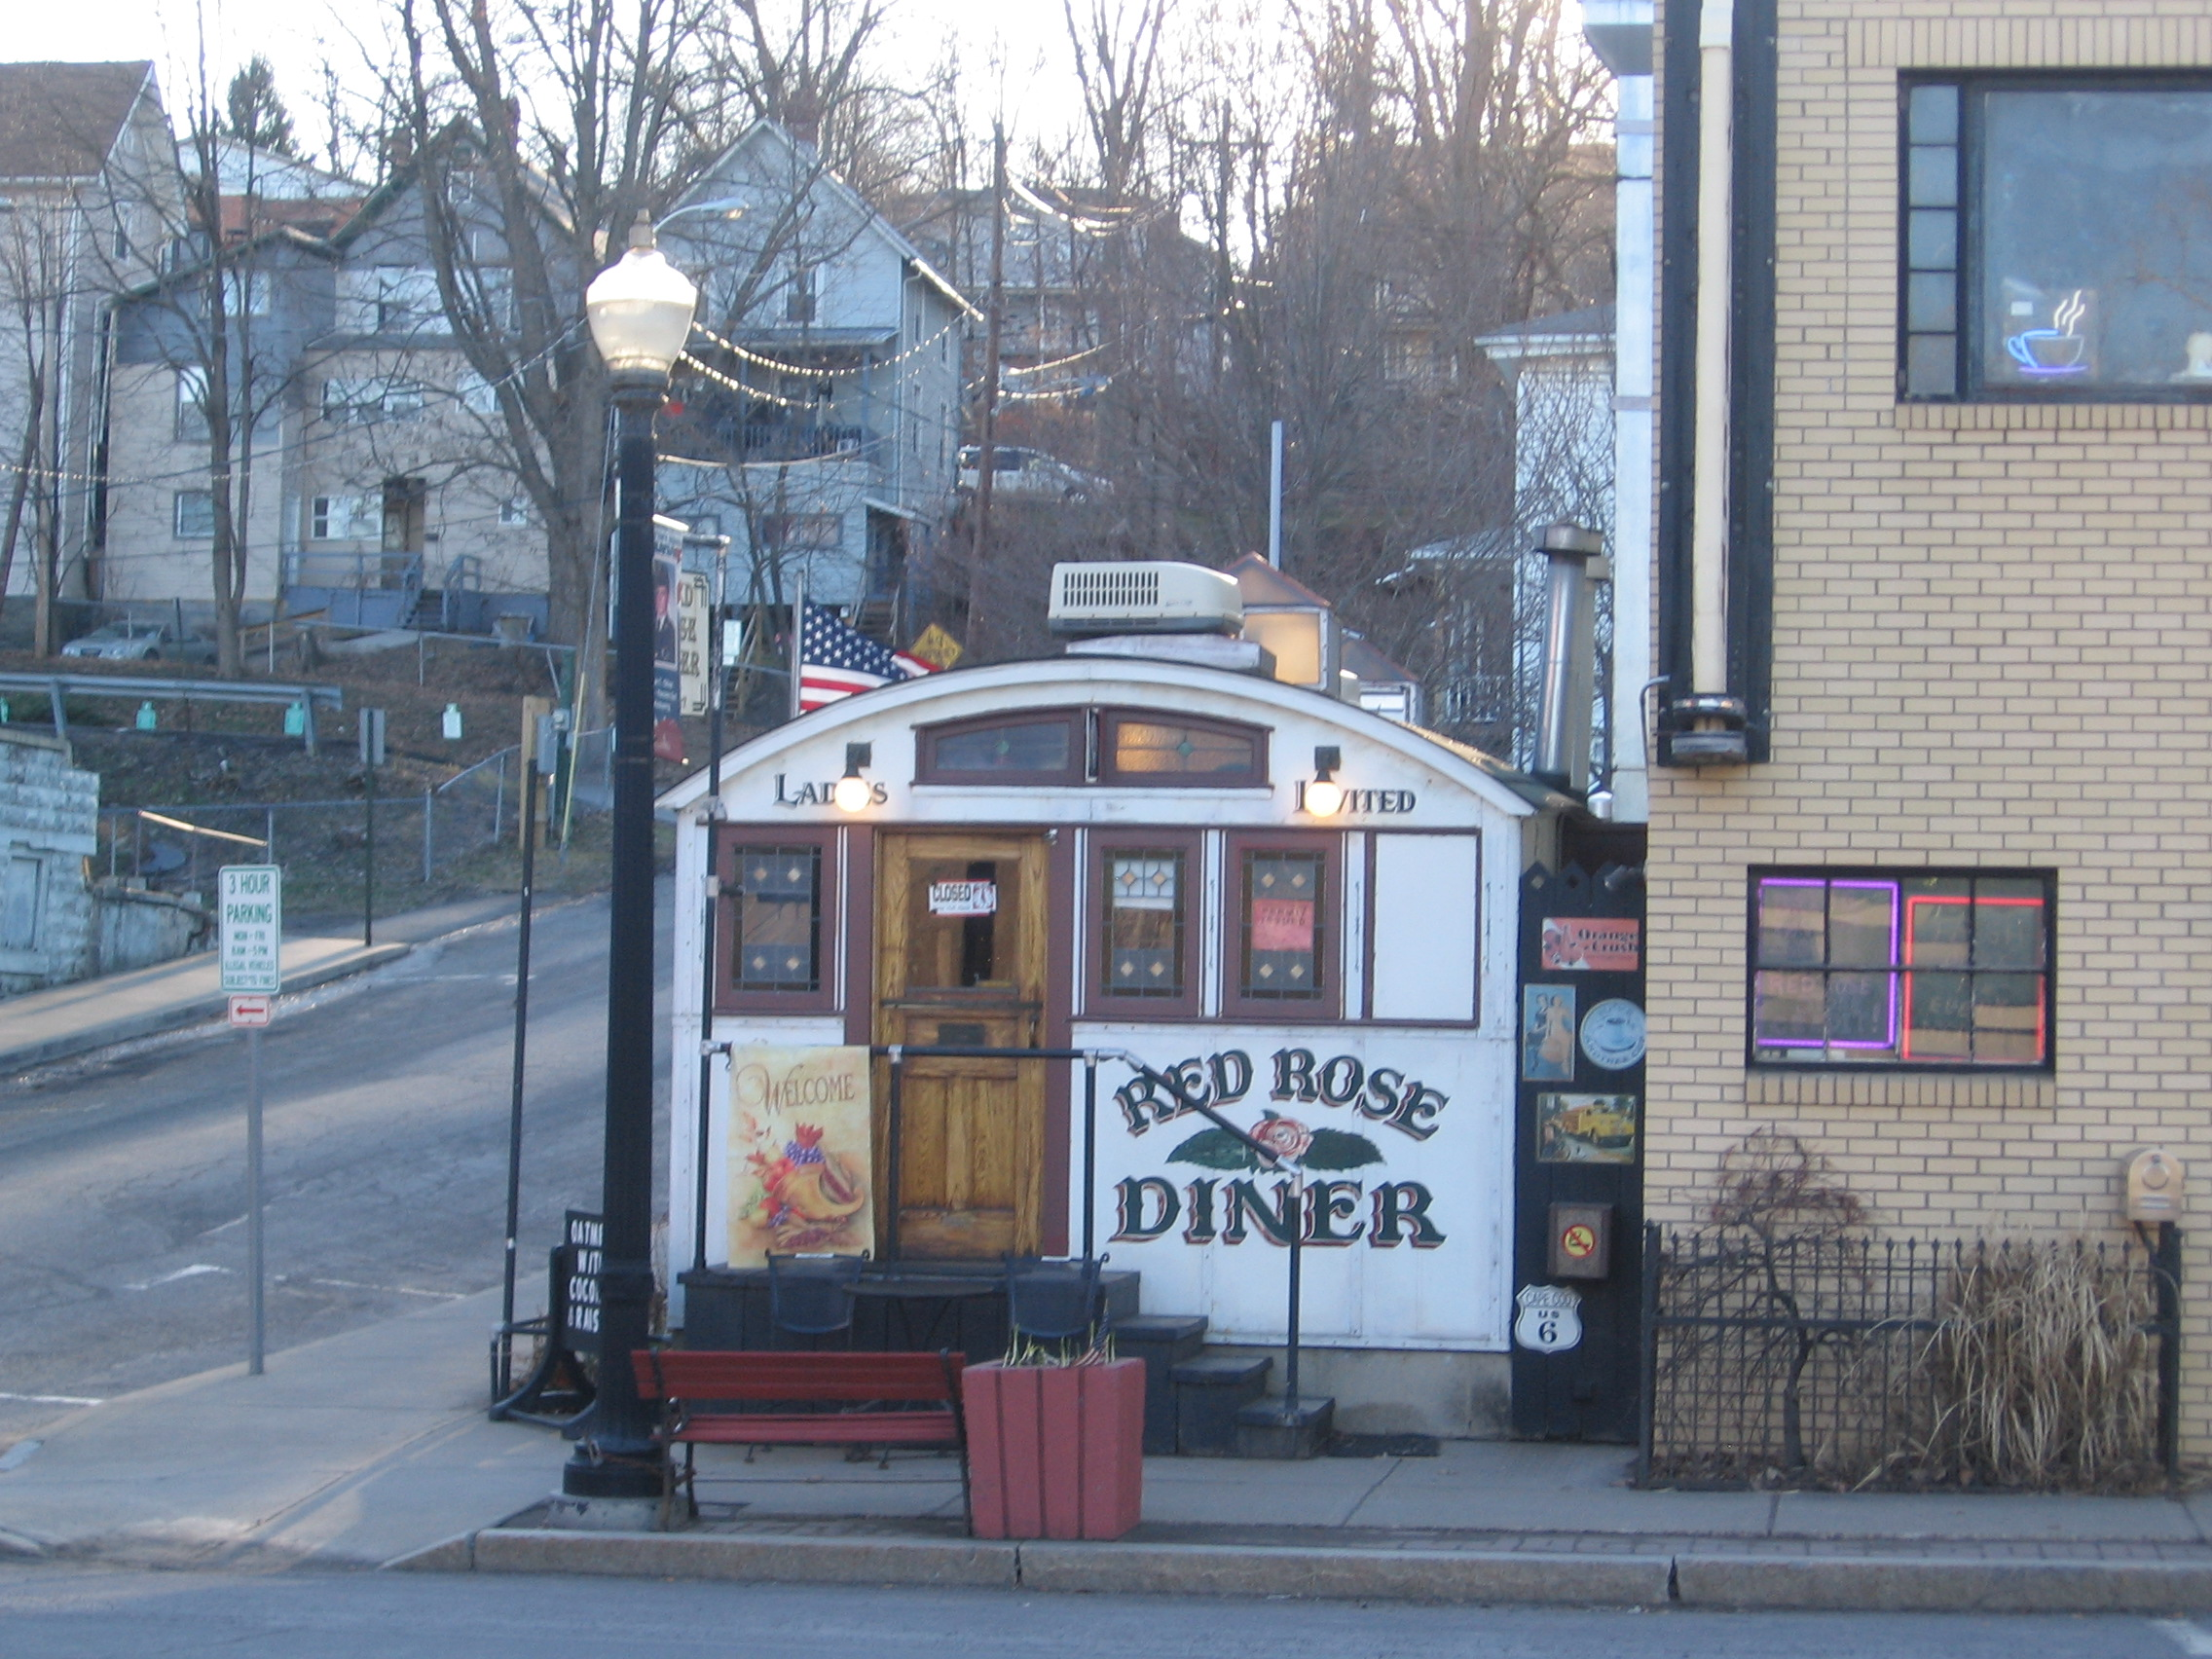 Towanda Landmark Red Rose Diner